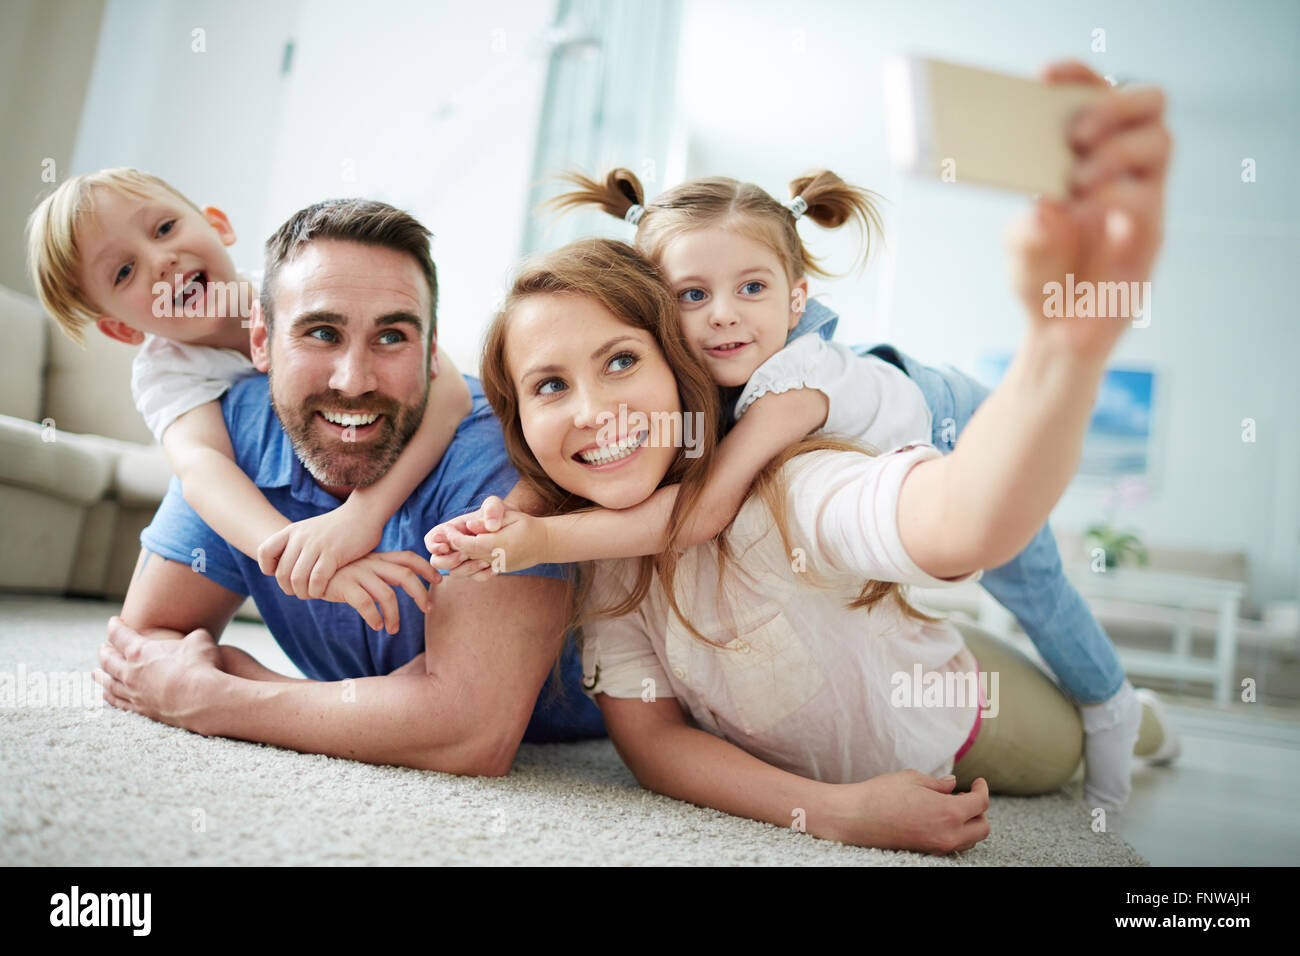 f0d7e47ba1c Happy young family taking selfie on the floor at home Stock Photo ...